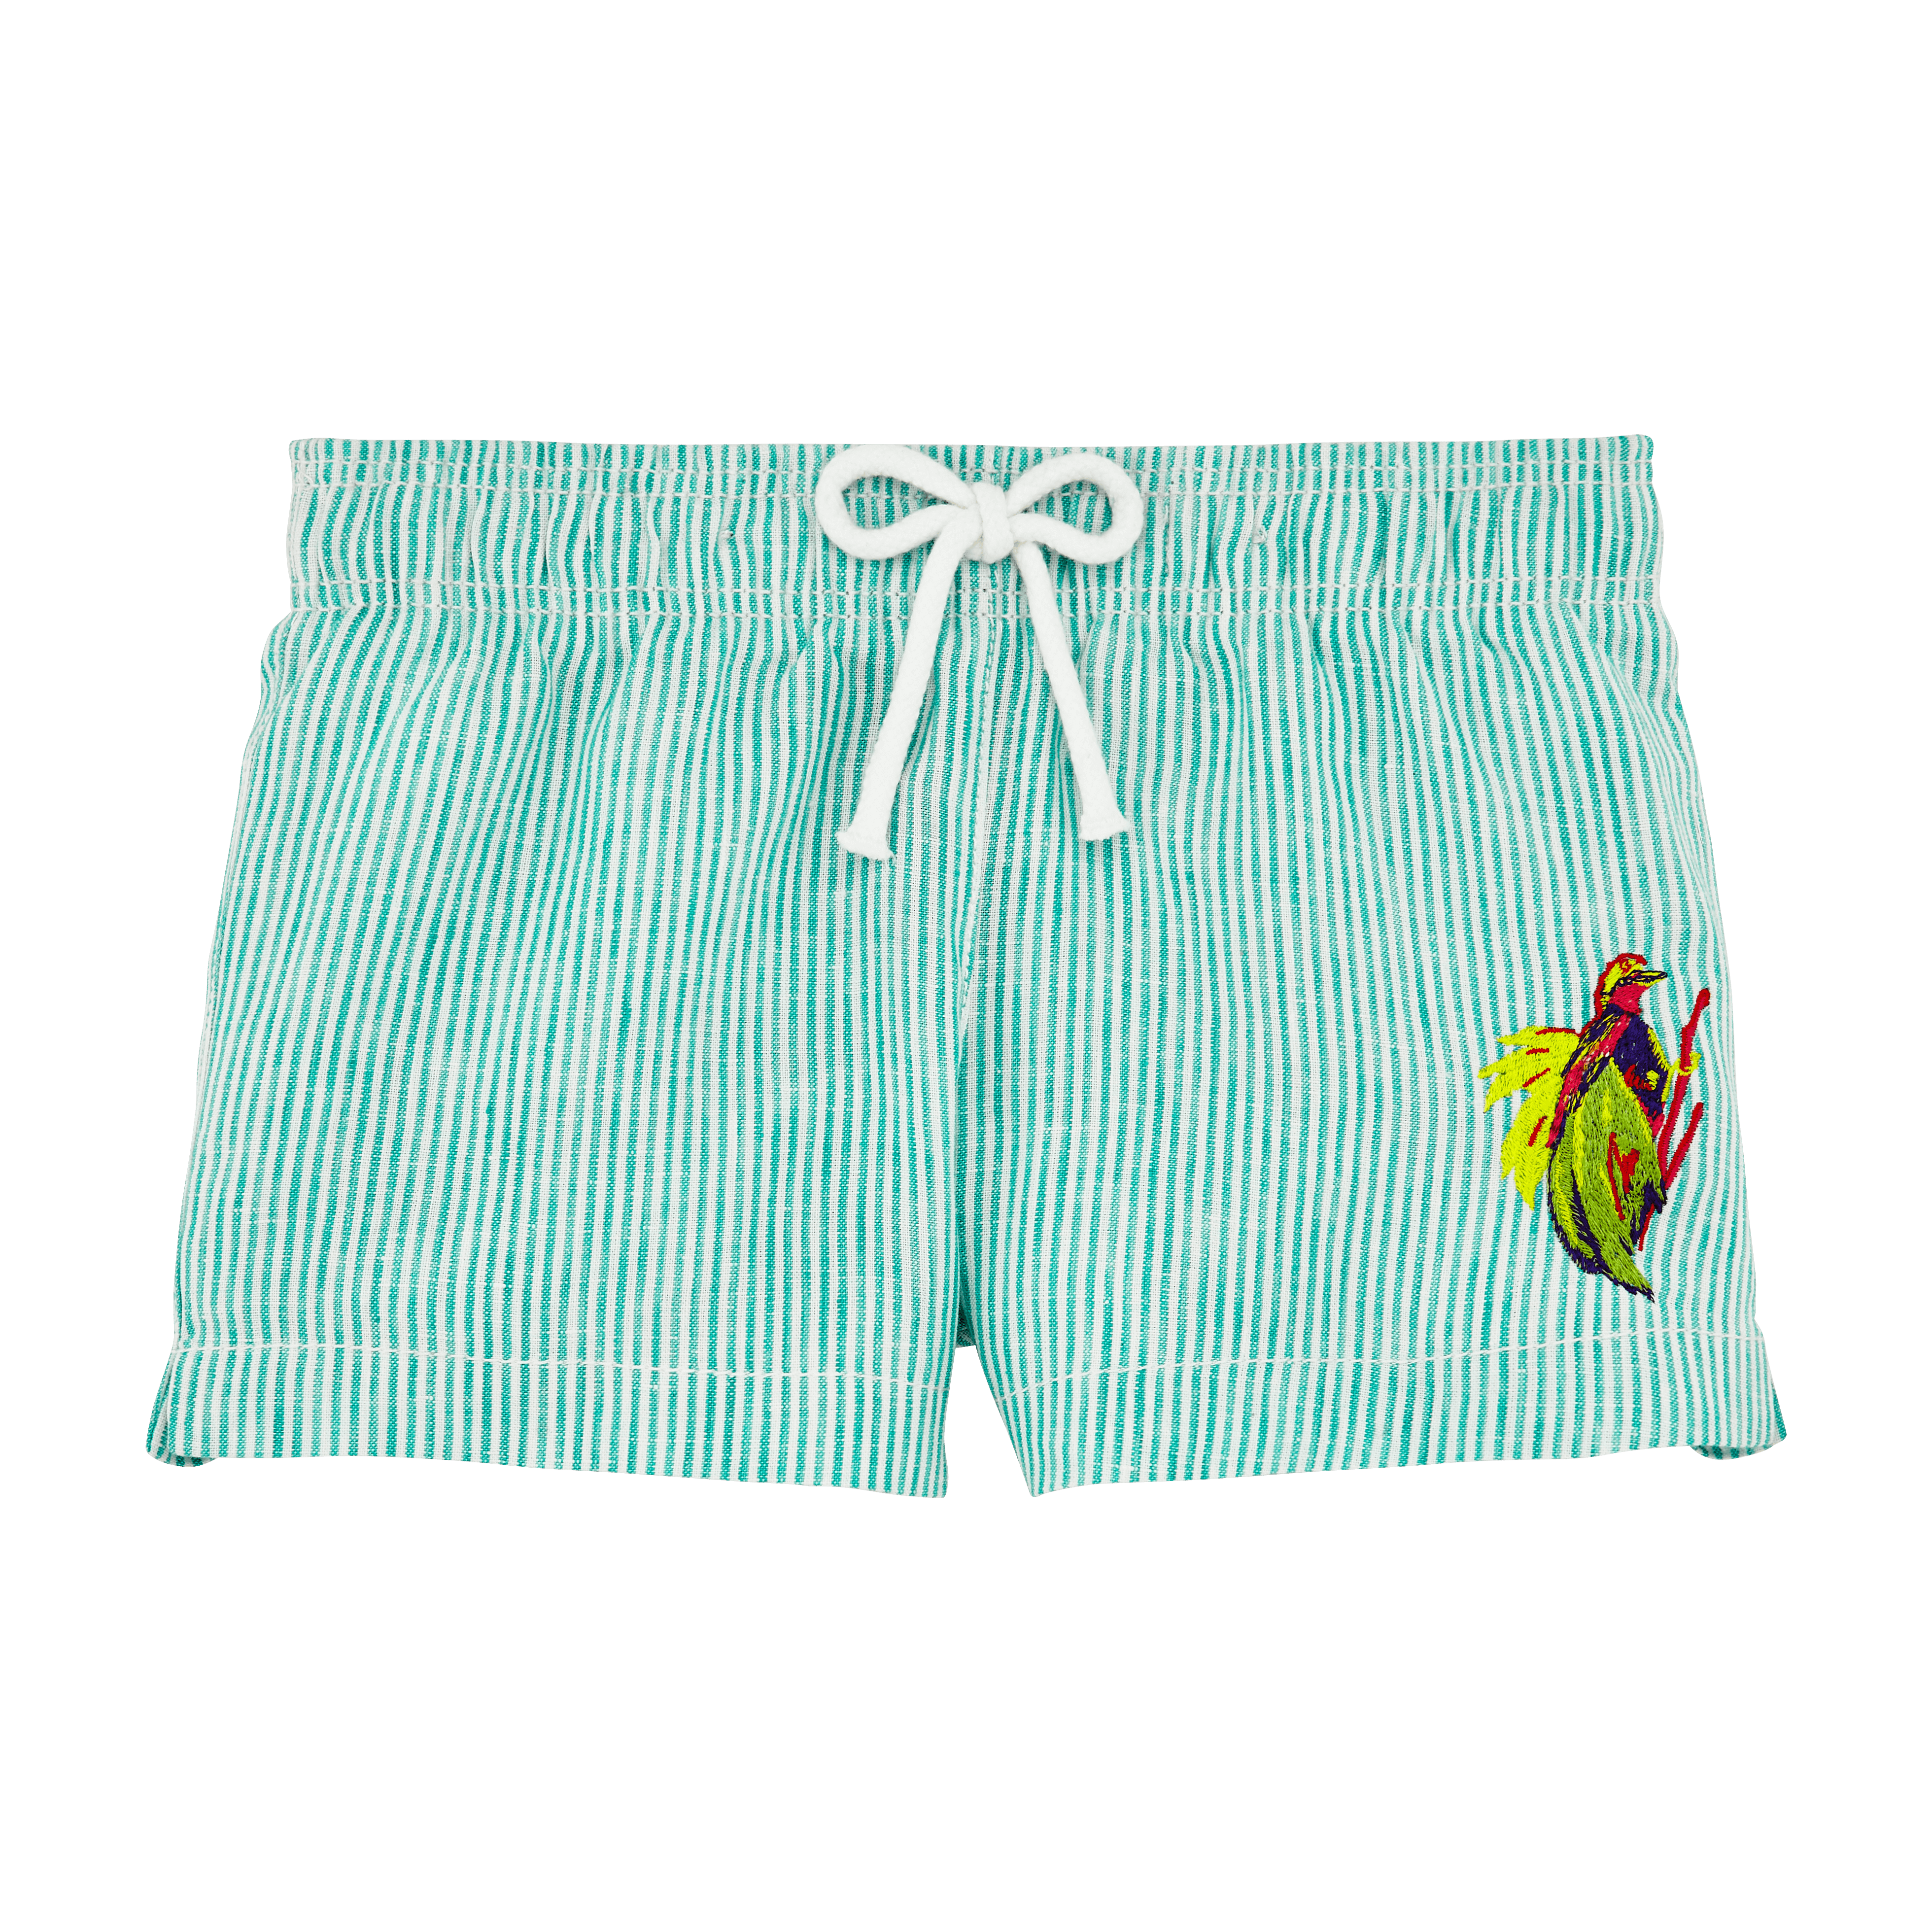 VILEBREQUIN | Girls Ready to Wear - Girls Linen Shortie Micro Stripes Birds of Paradise Embroidery - SHORTY - GAYA - Green - 10 - Vilebrequin | Goxip